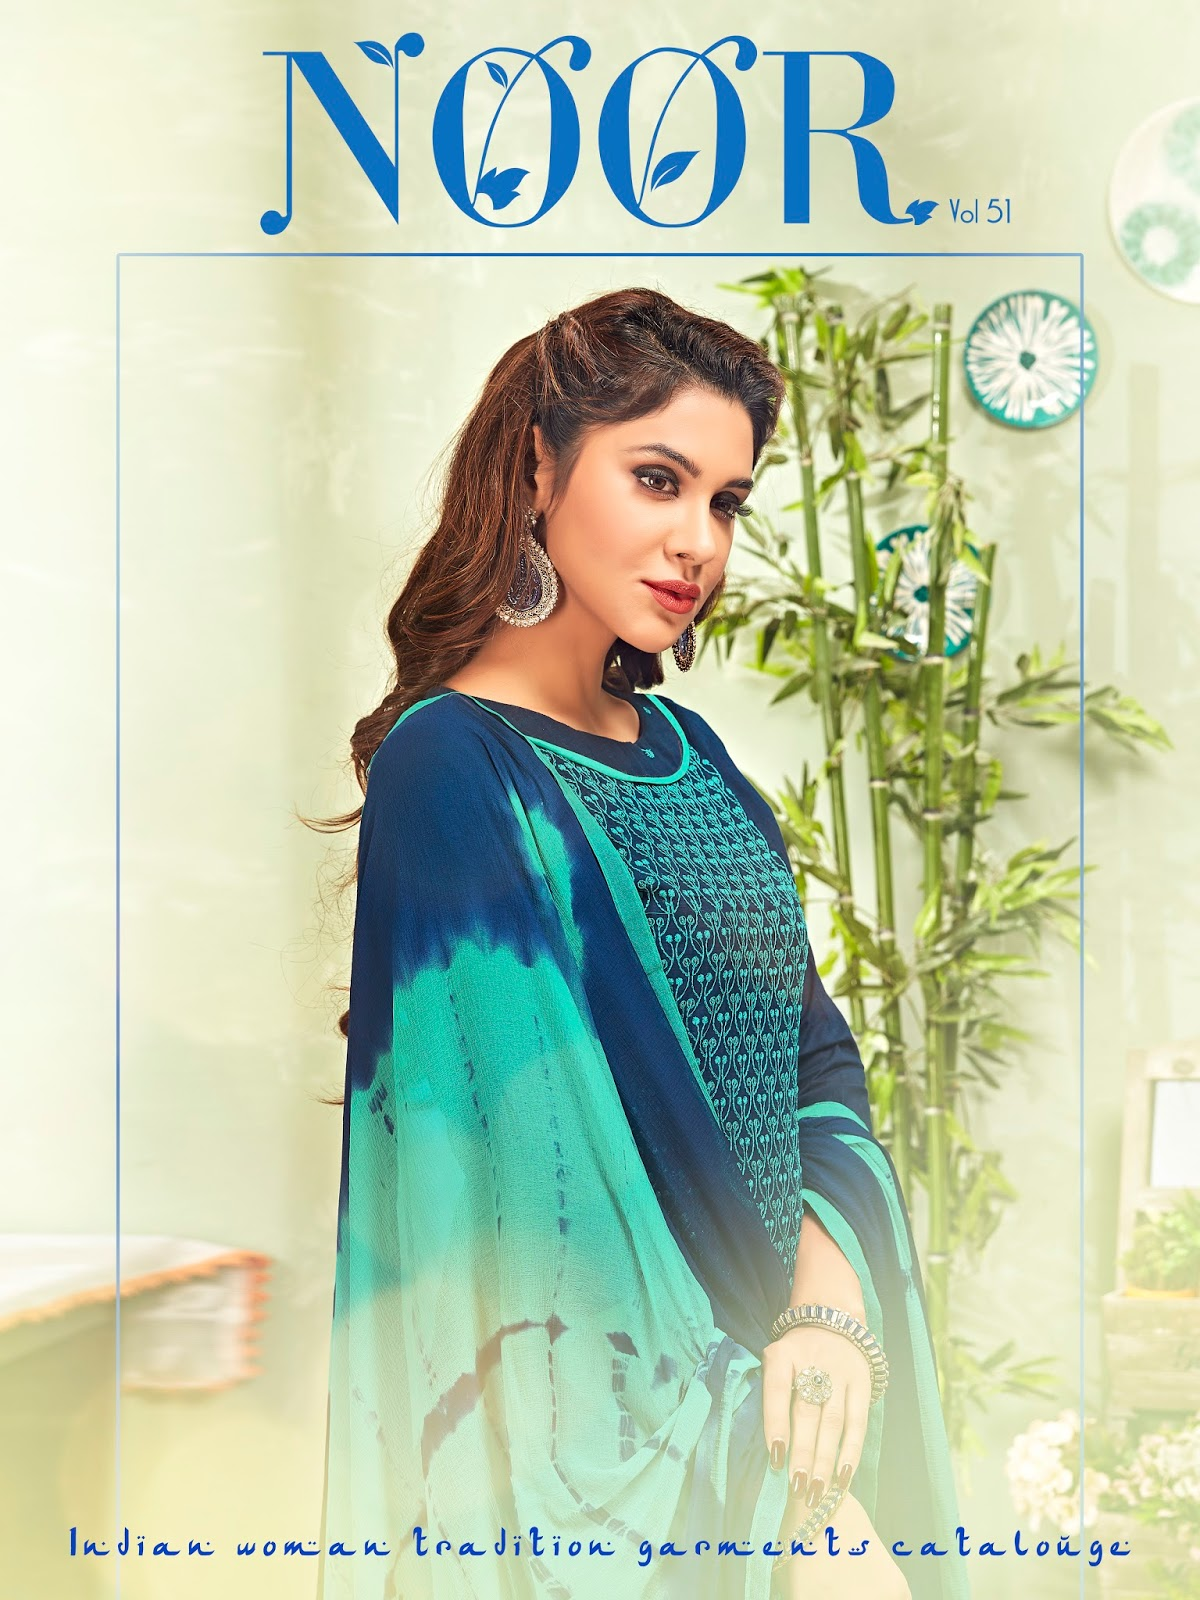 Kavya vol 51-Noor-New Arrival Mumbai Cotton Slub Dress Material